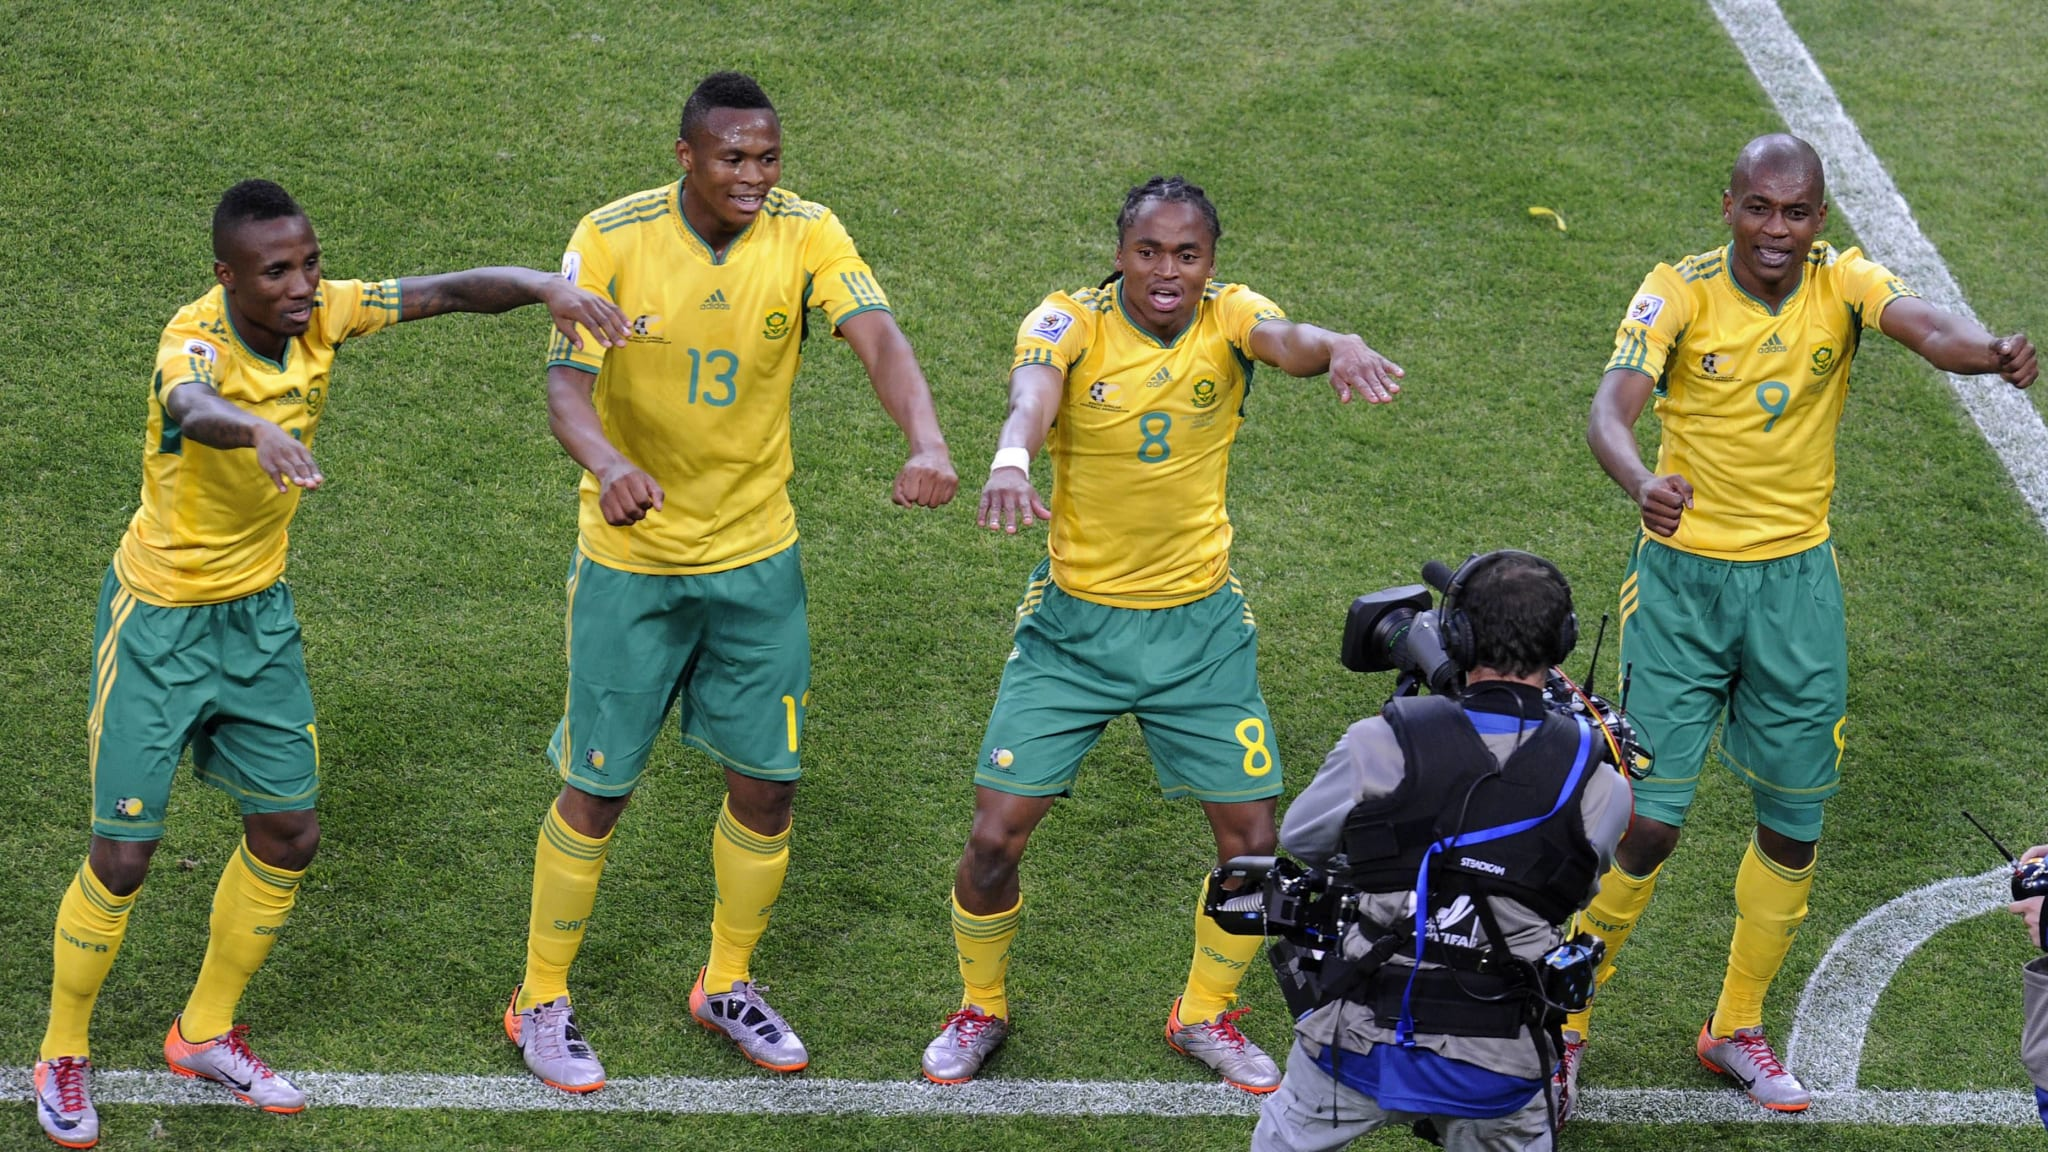 June 11, 2010: Siphiwe Tshabalala of South Africa (RSA, yellow) celebrates his goal during a group A match of the 2010 FIFA World Cup against Mexico at Soccer City stadium in Soweto